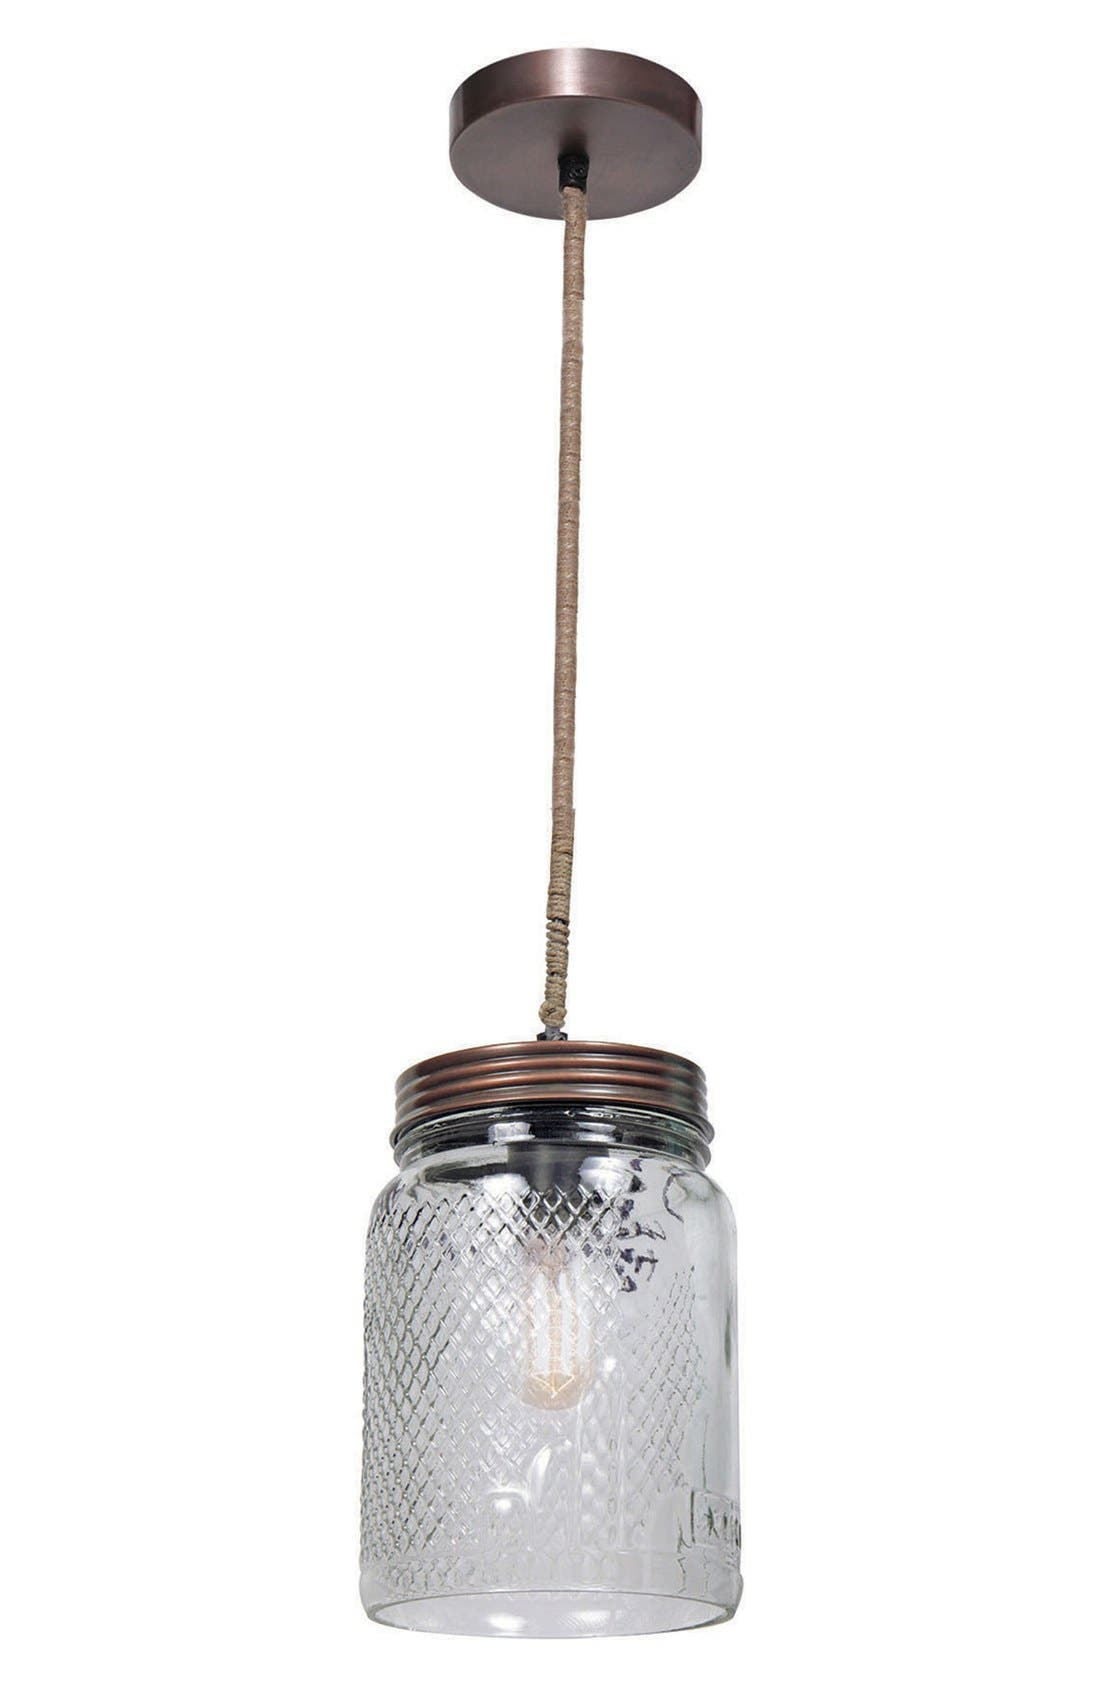 Alternate Image 1 Selected - Renwil 'Mason Jar' Ceiling Light Fixture